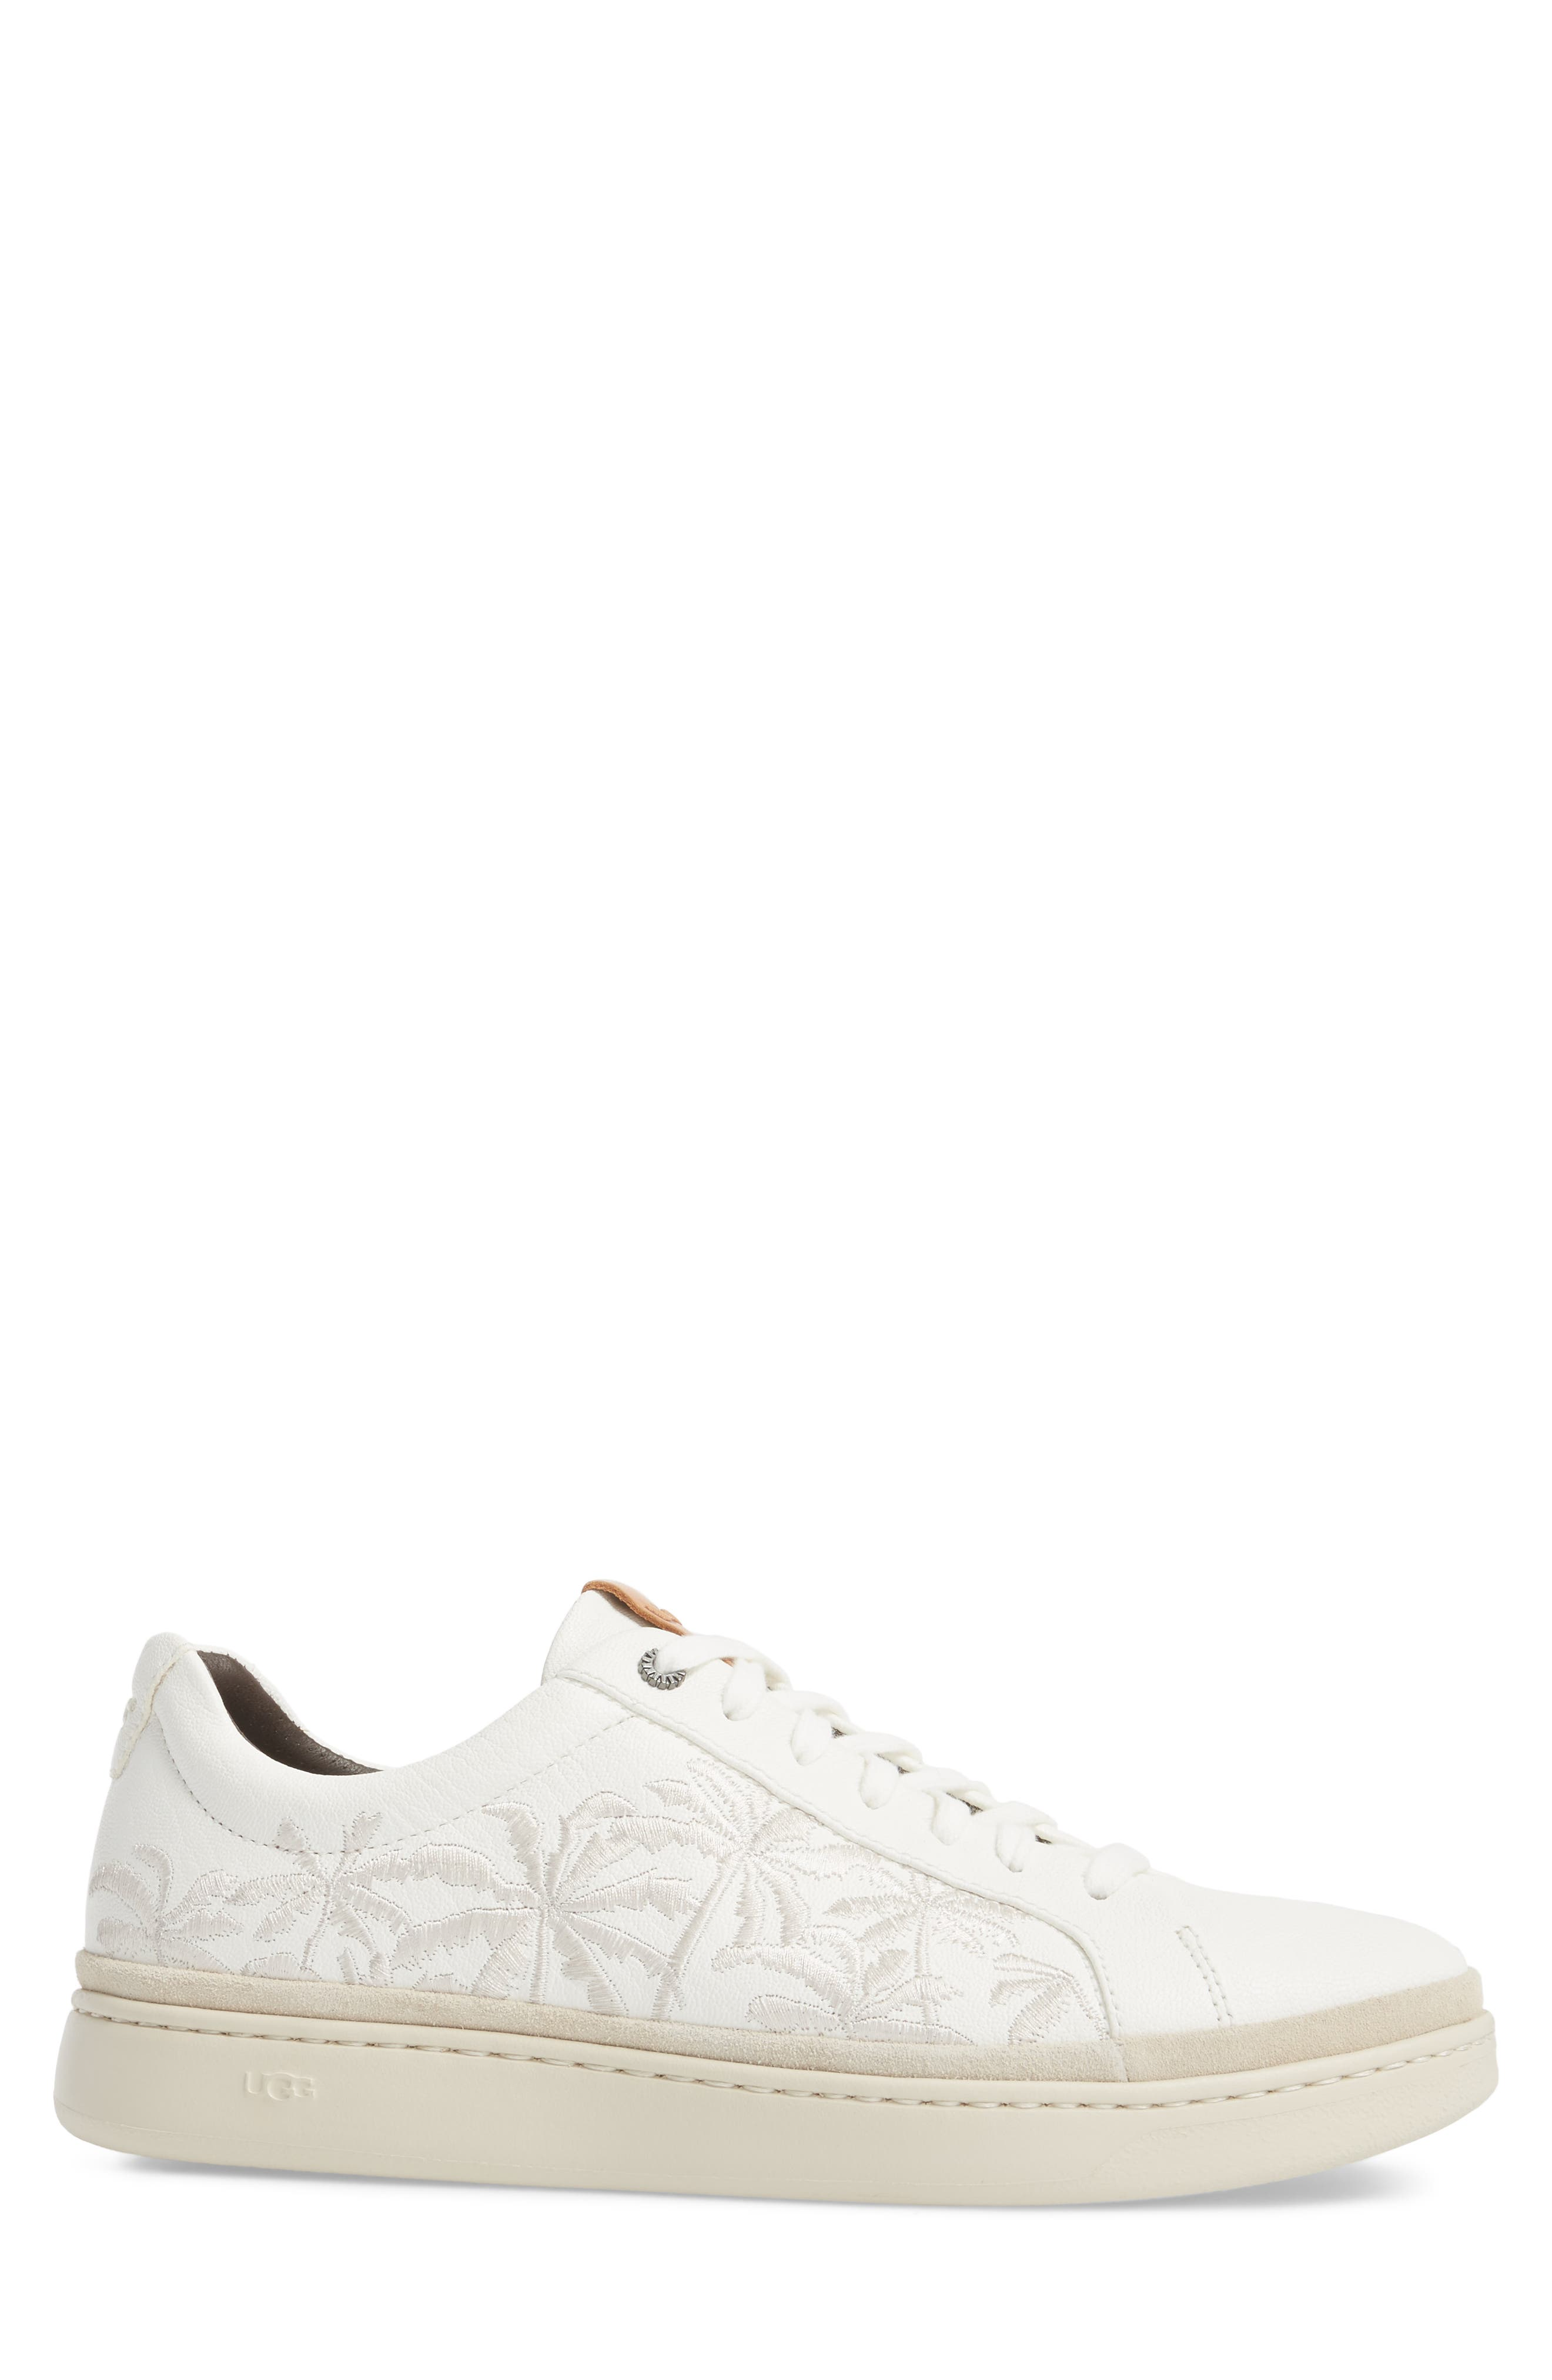 Palm Embroidered Sneaker,                             Alternate thumbnail 3, color,                             White Leather